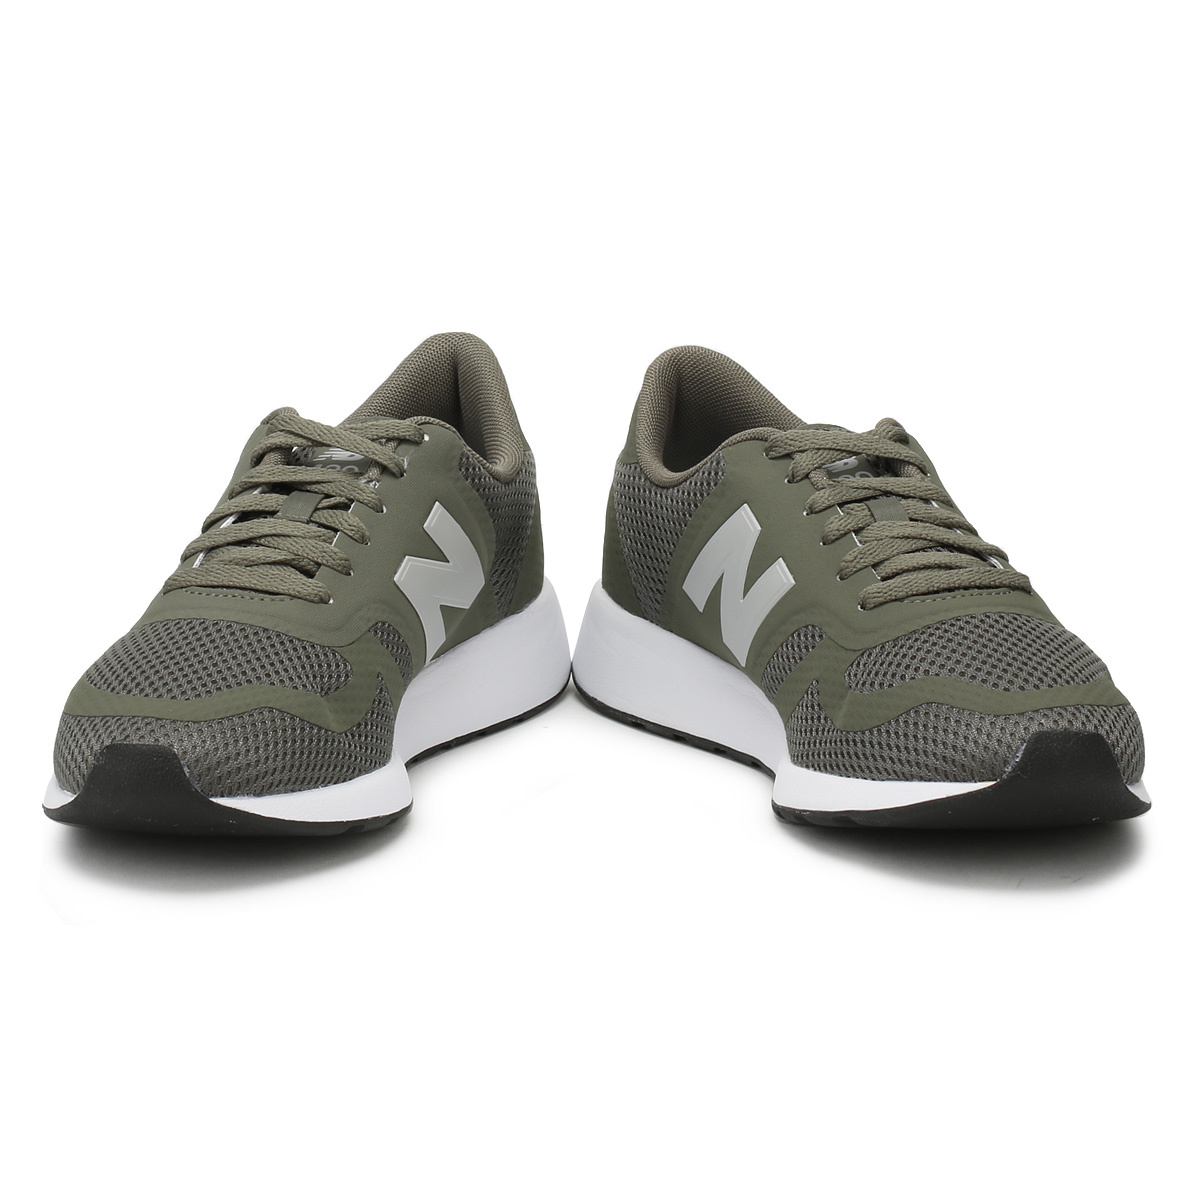 6759ec69065 New Balance Mens Trainers Military Green 420 Lace Up Sport Casual Running  Shoes